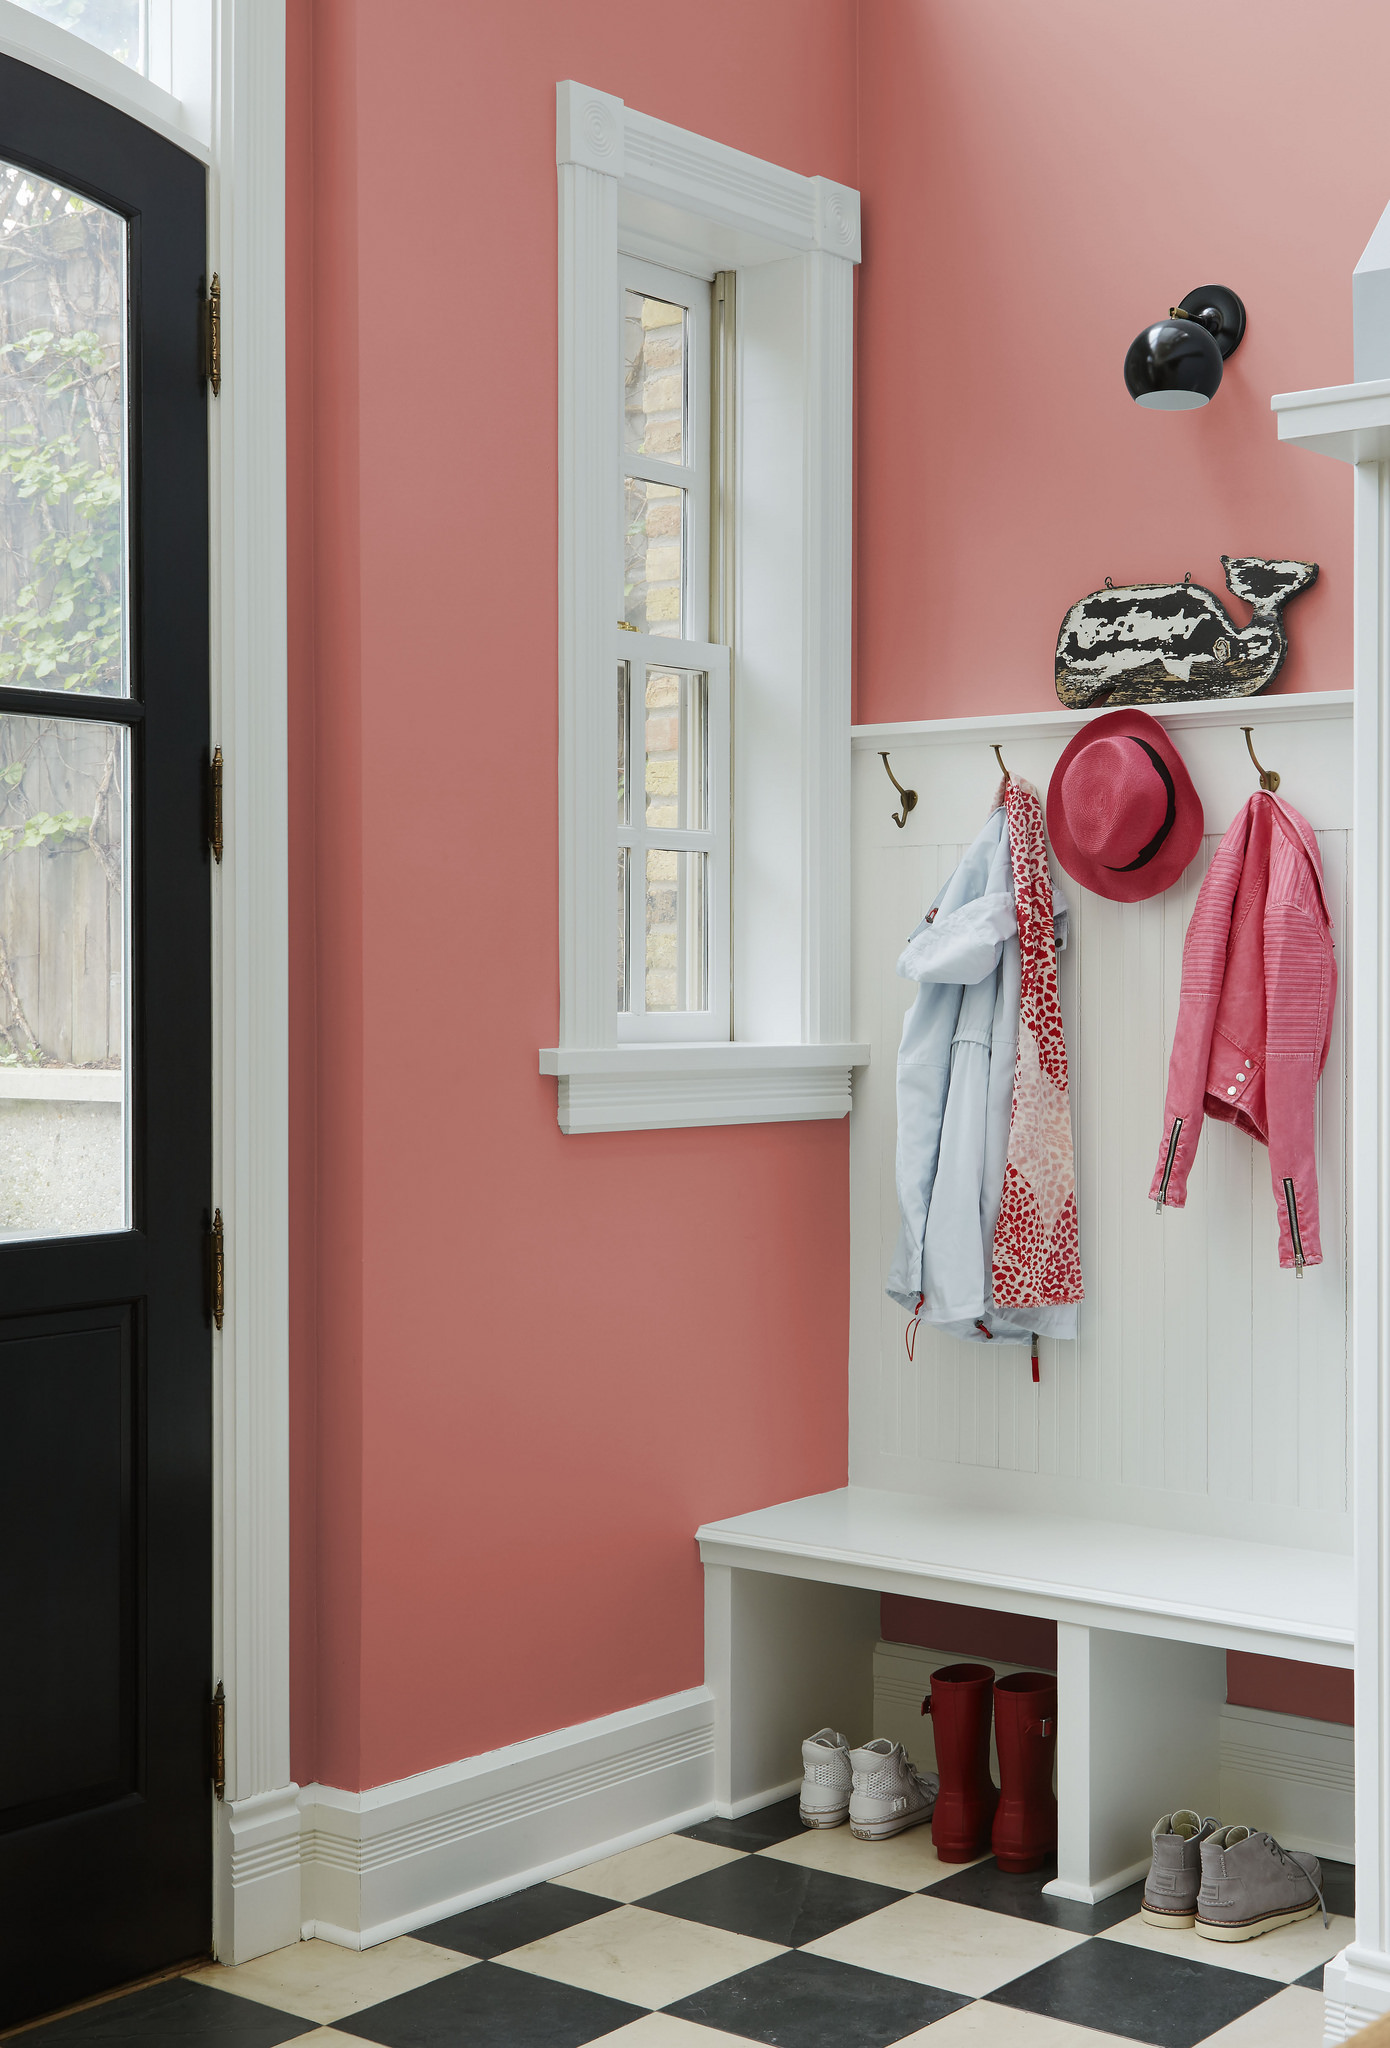 Zoffany Paint - Tuscan Pink | Interior house colors